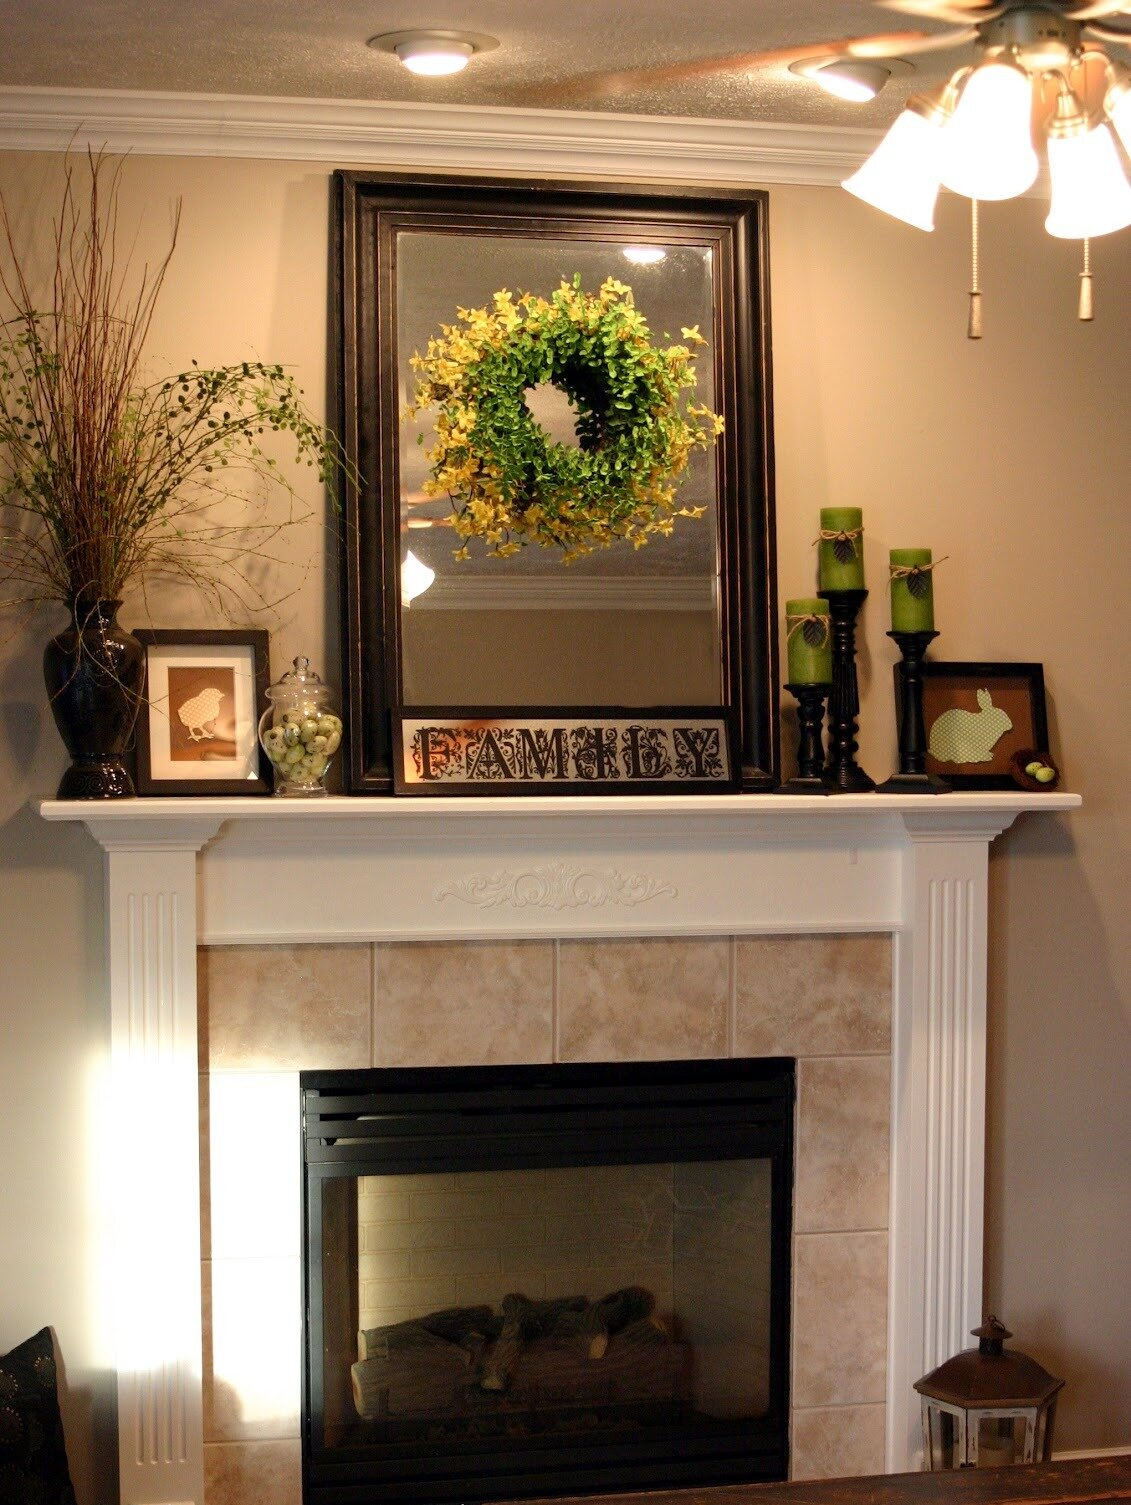 How to Decorate A Fireplace Mantle | Christmas Decor for Fireplace Mantel | Fireplace Mantel Decor